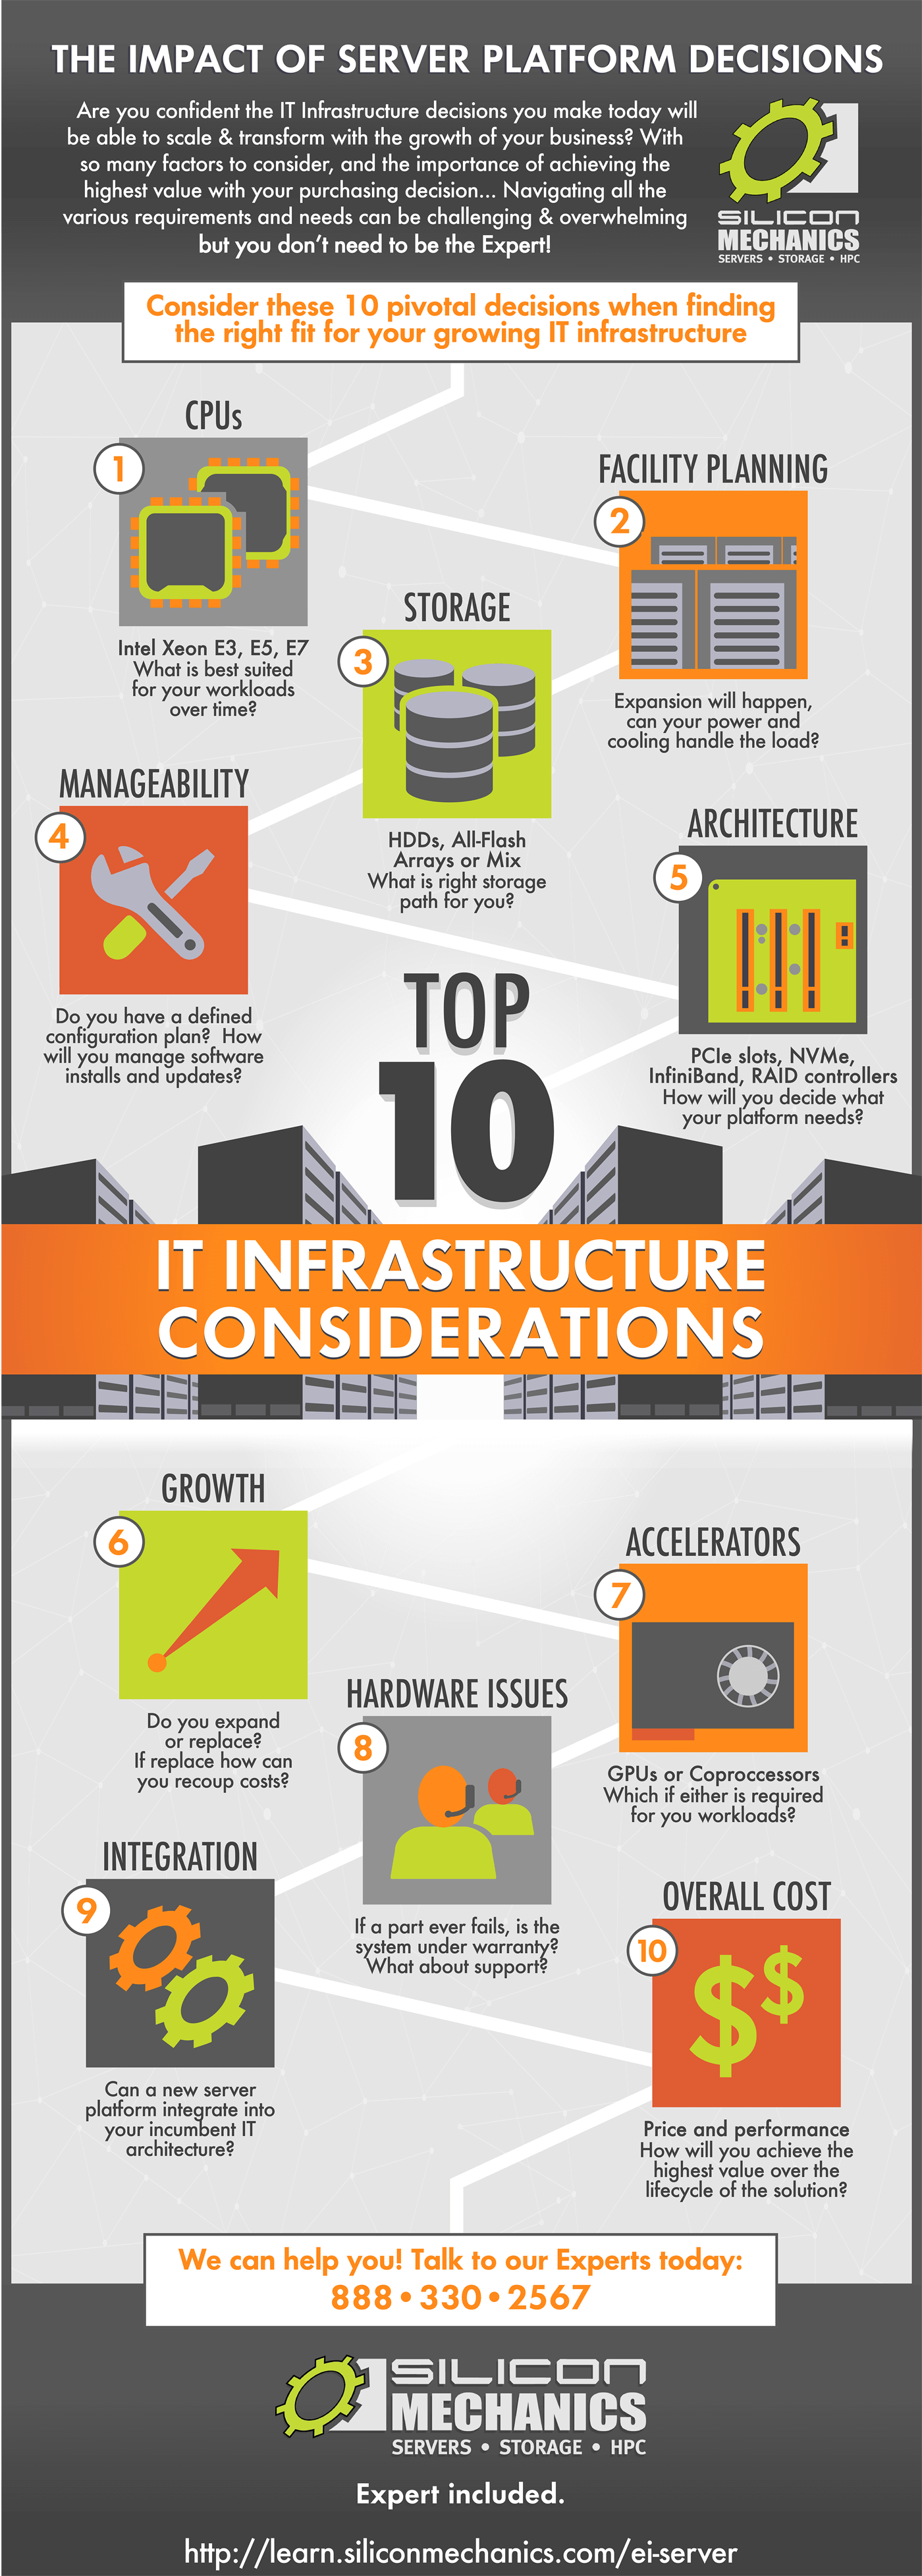 Top 10 IT Infrastructure Considerations